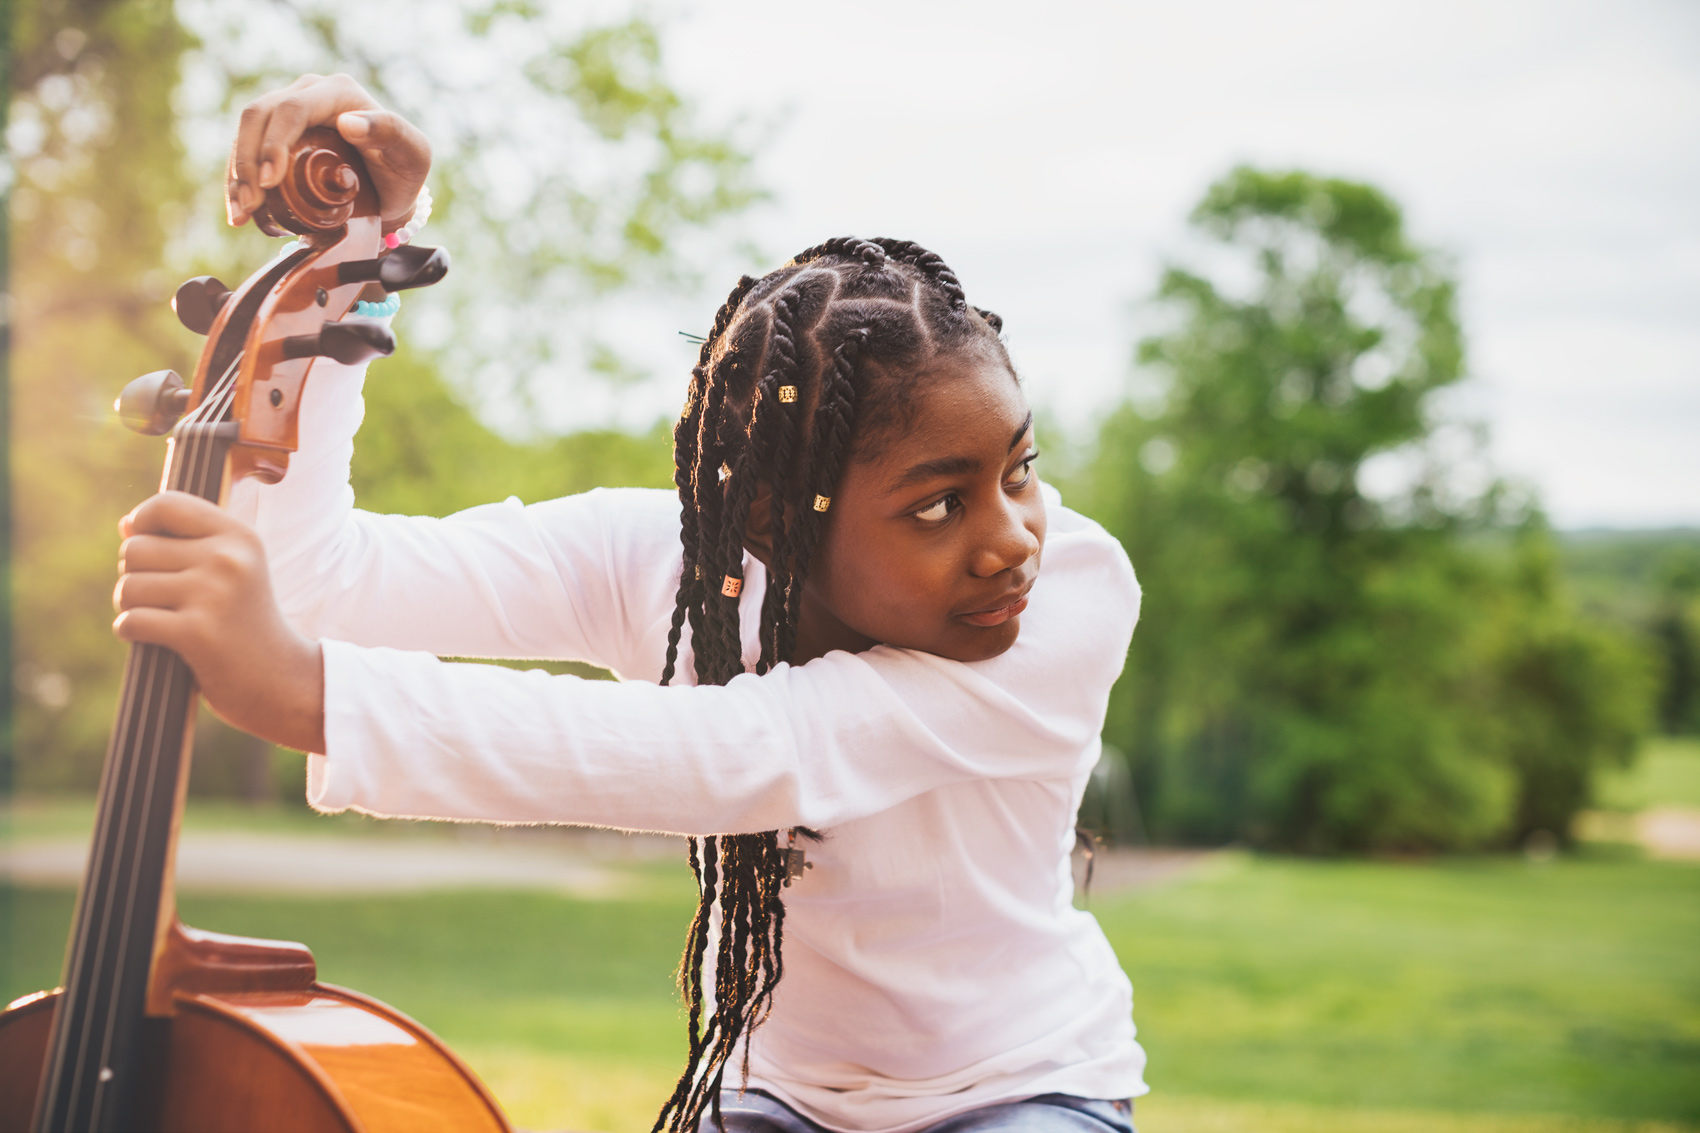 adolescent girl holding cello fingerboard outside, washington dc commercial photography